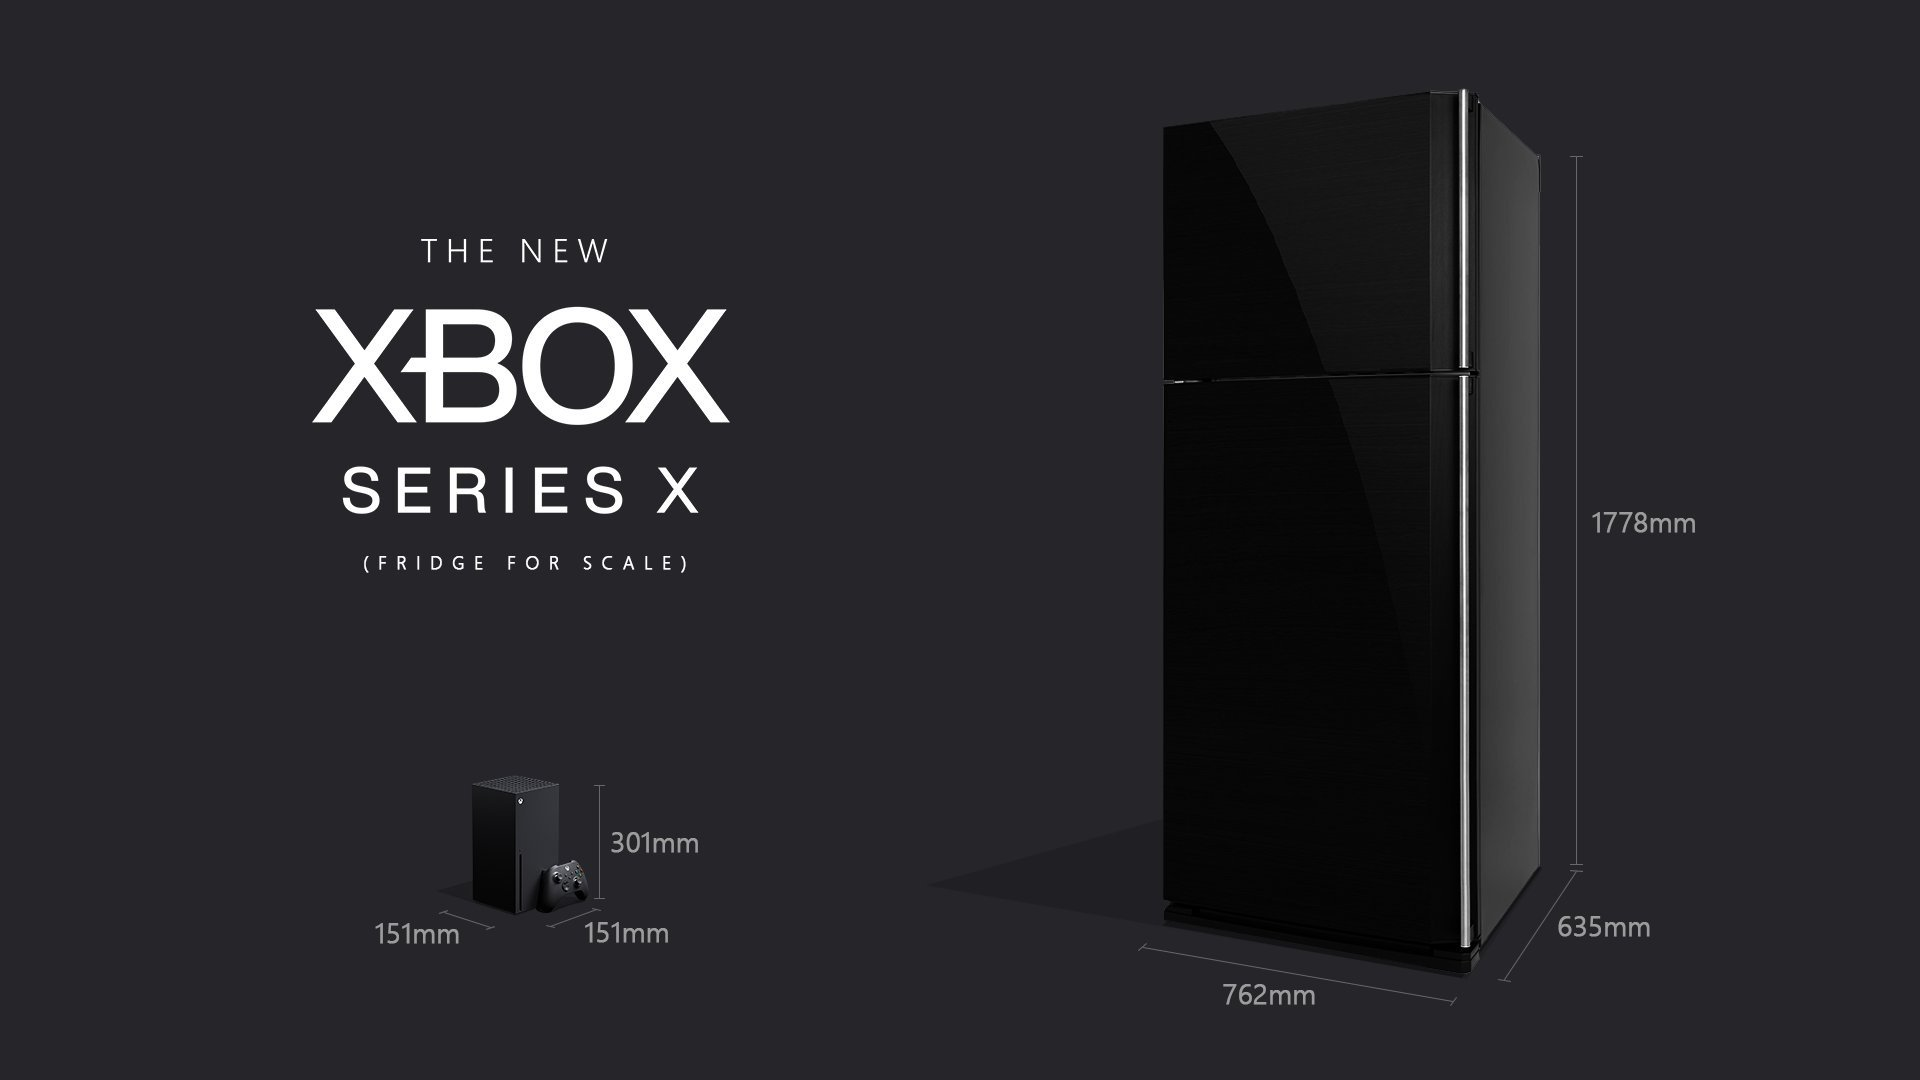 According To Microsoft This Is Why The Xbox Series X Looks Like A Fridge Xbox News